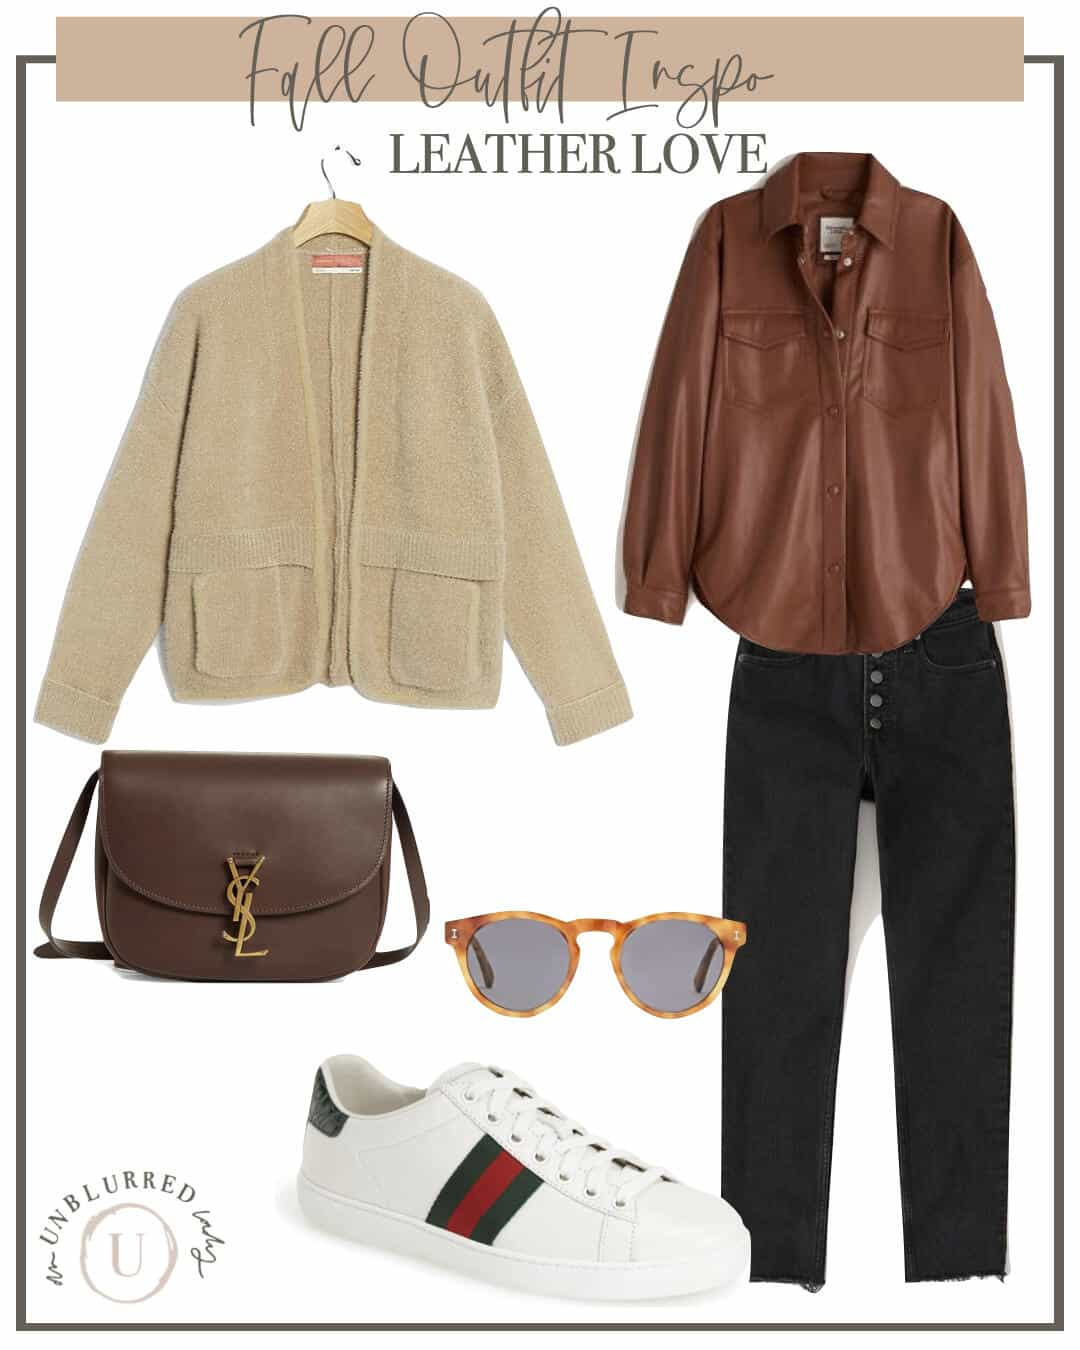 Fall Outfit Ideas 2020 // 20+ Ideas to Try